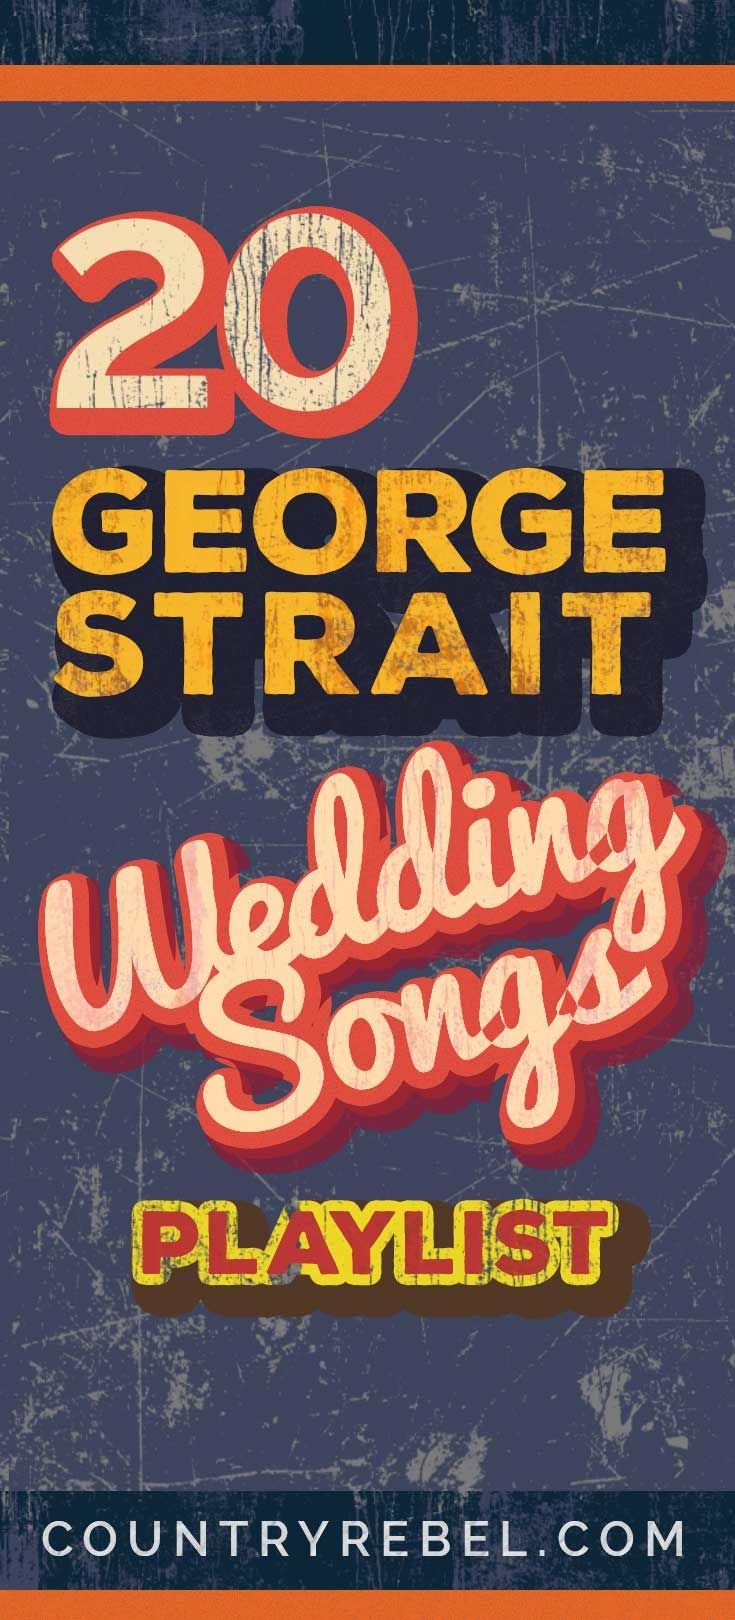 1000+ Ideas About Wedding Song Playlist On Pinterest